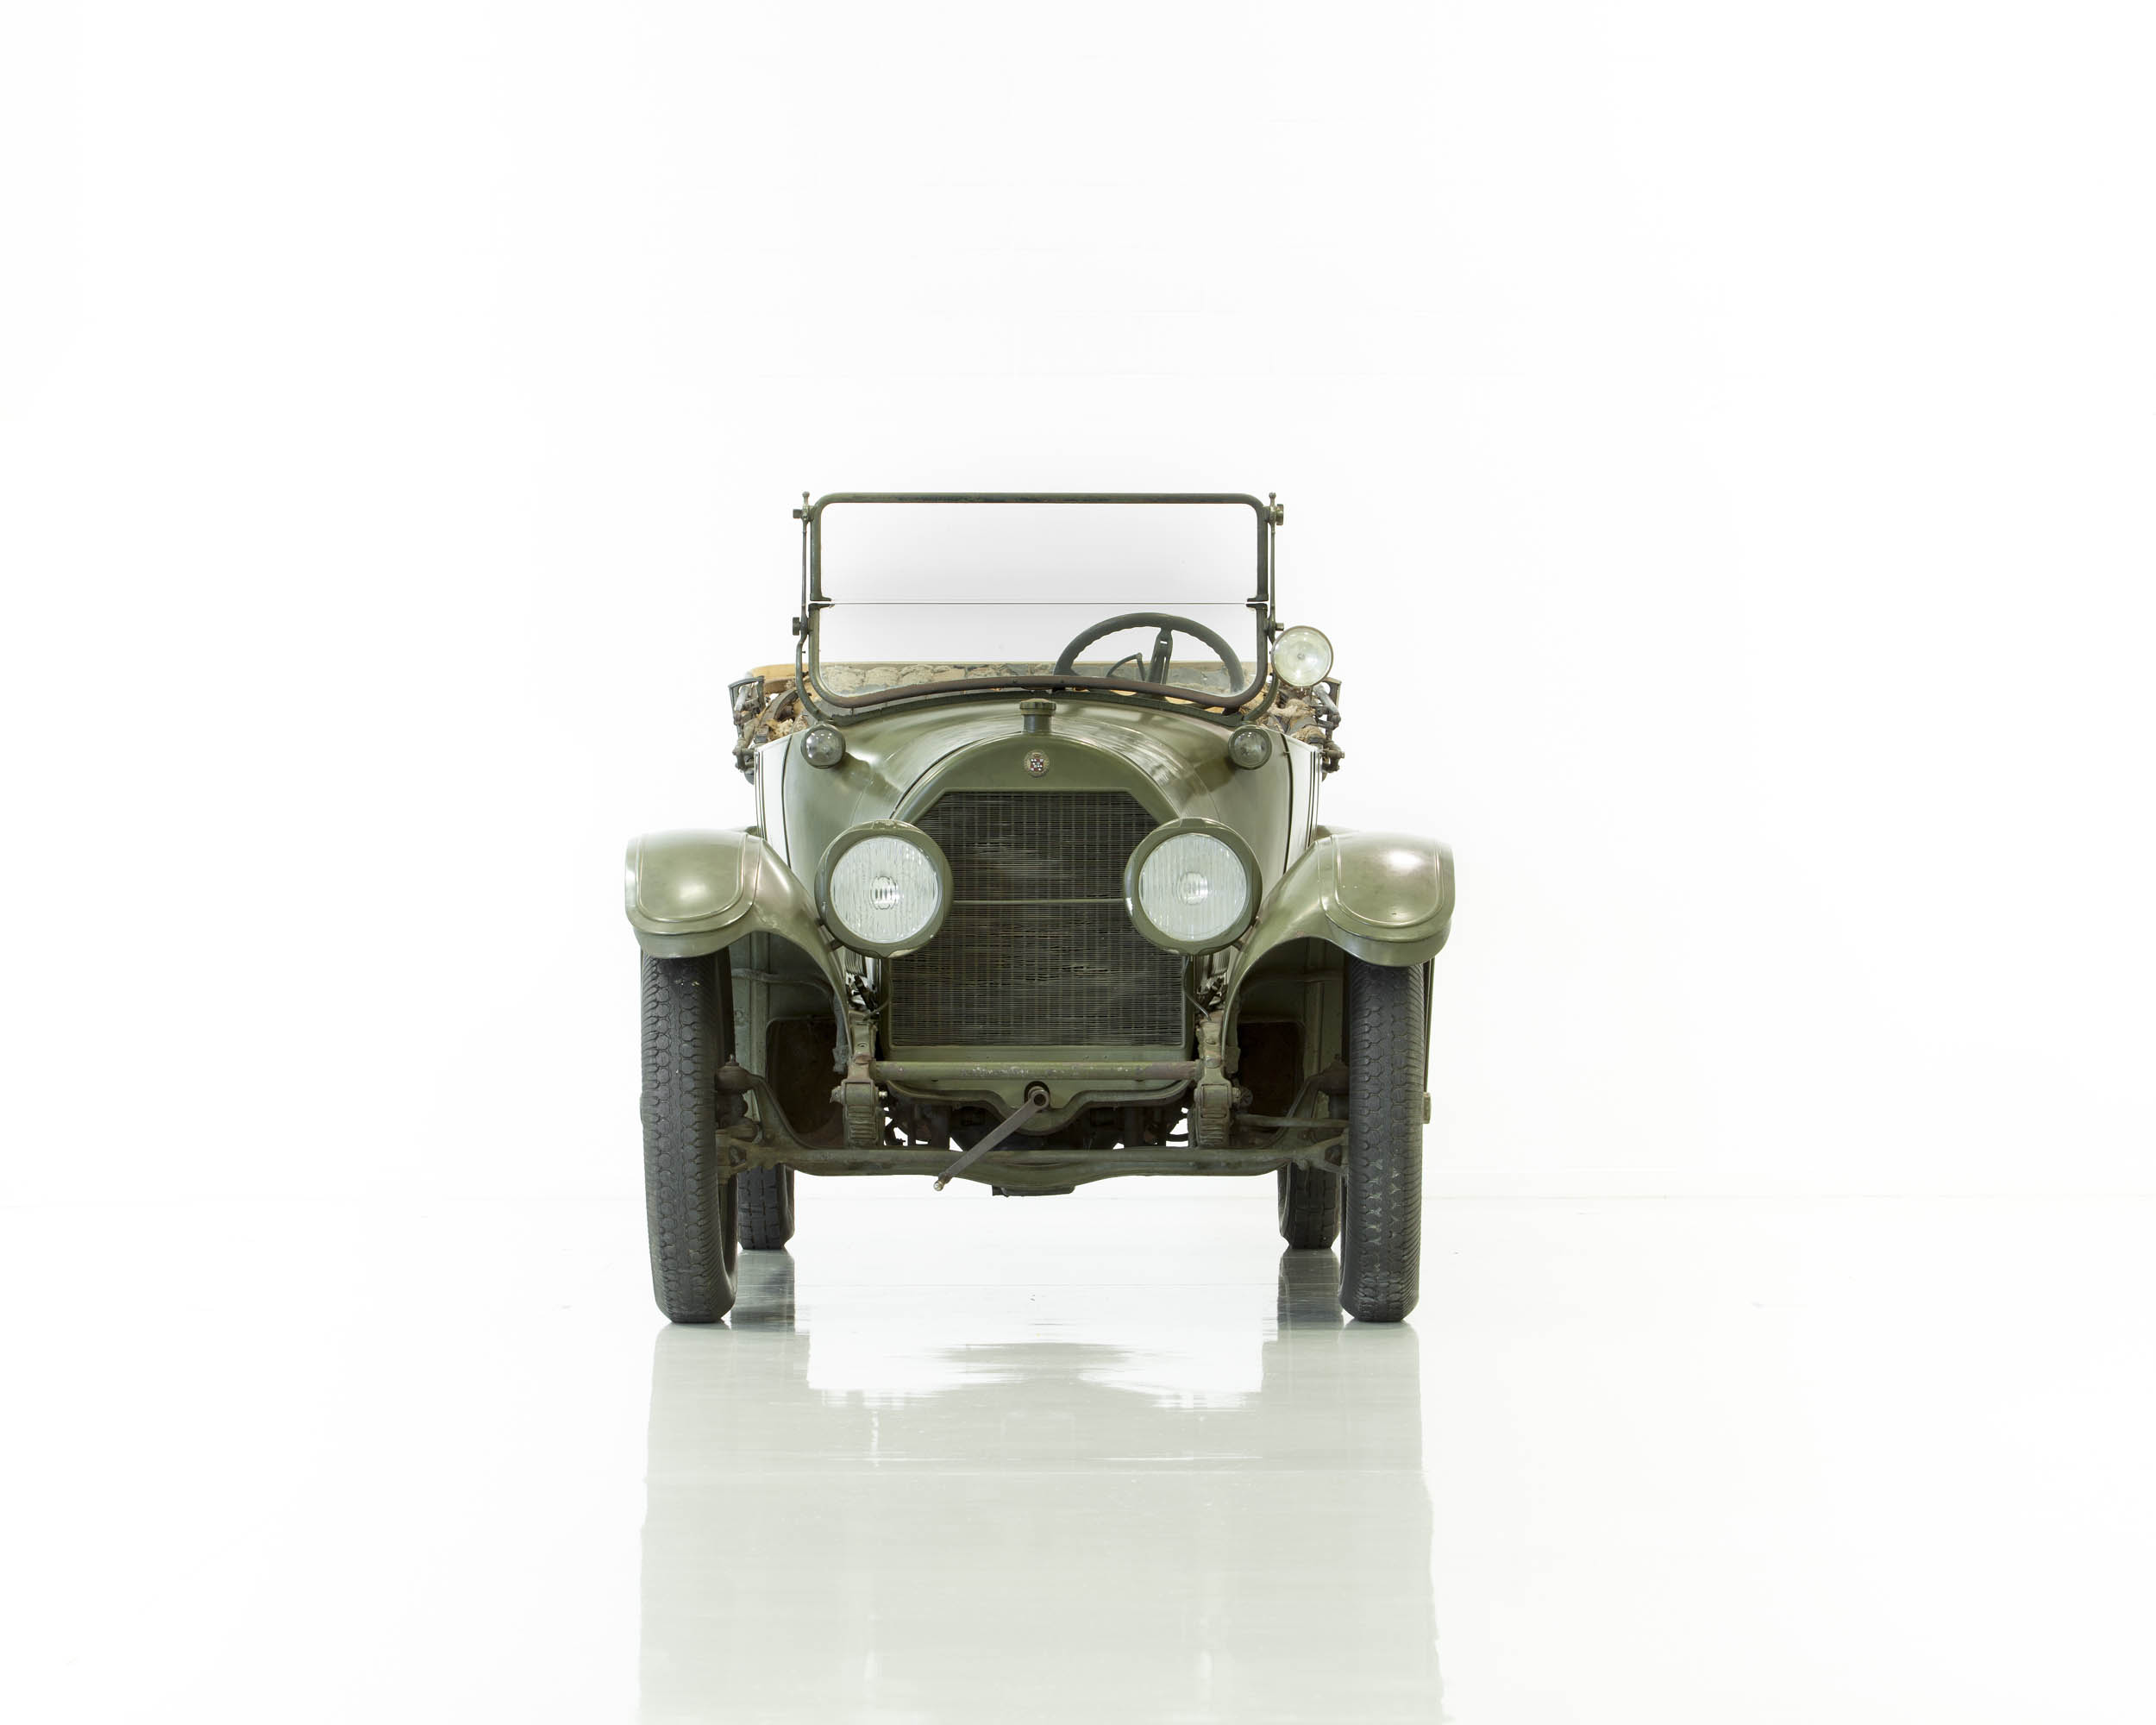 1918 Cadillac Type 57 front